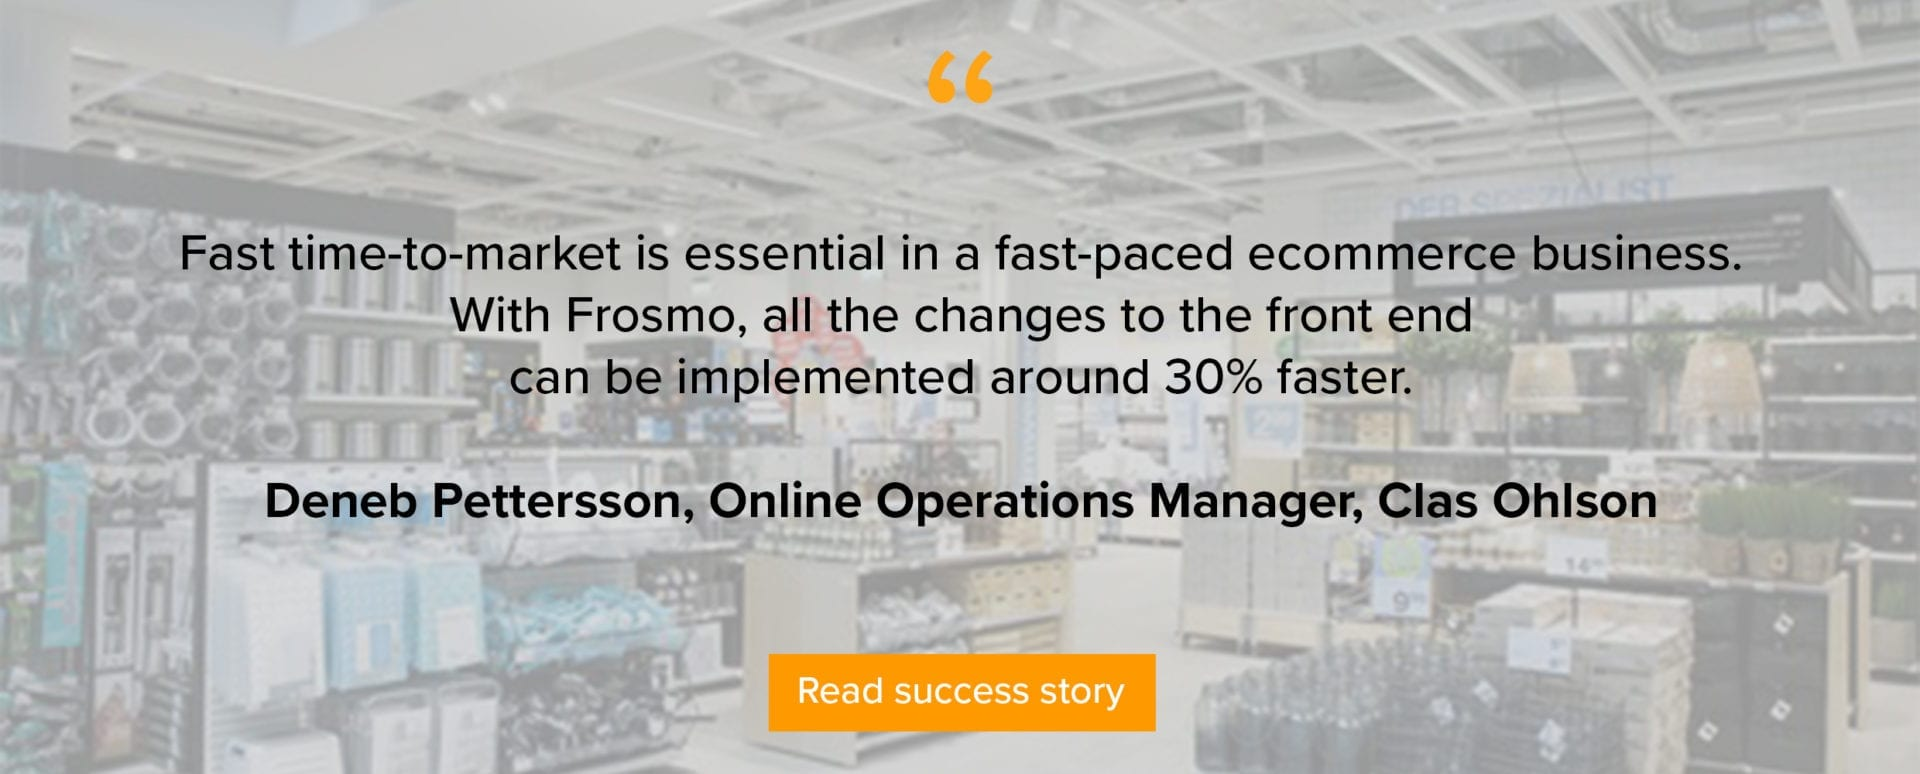 Clas Ohlson gains great results with validated personalized customer journeys with SAP Hybris and Frosmo